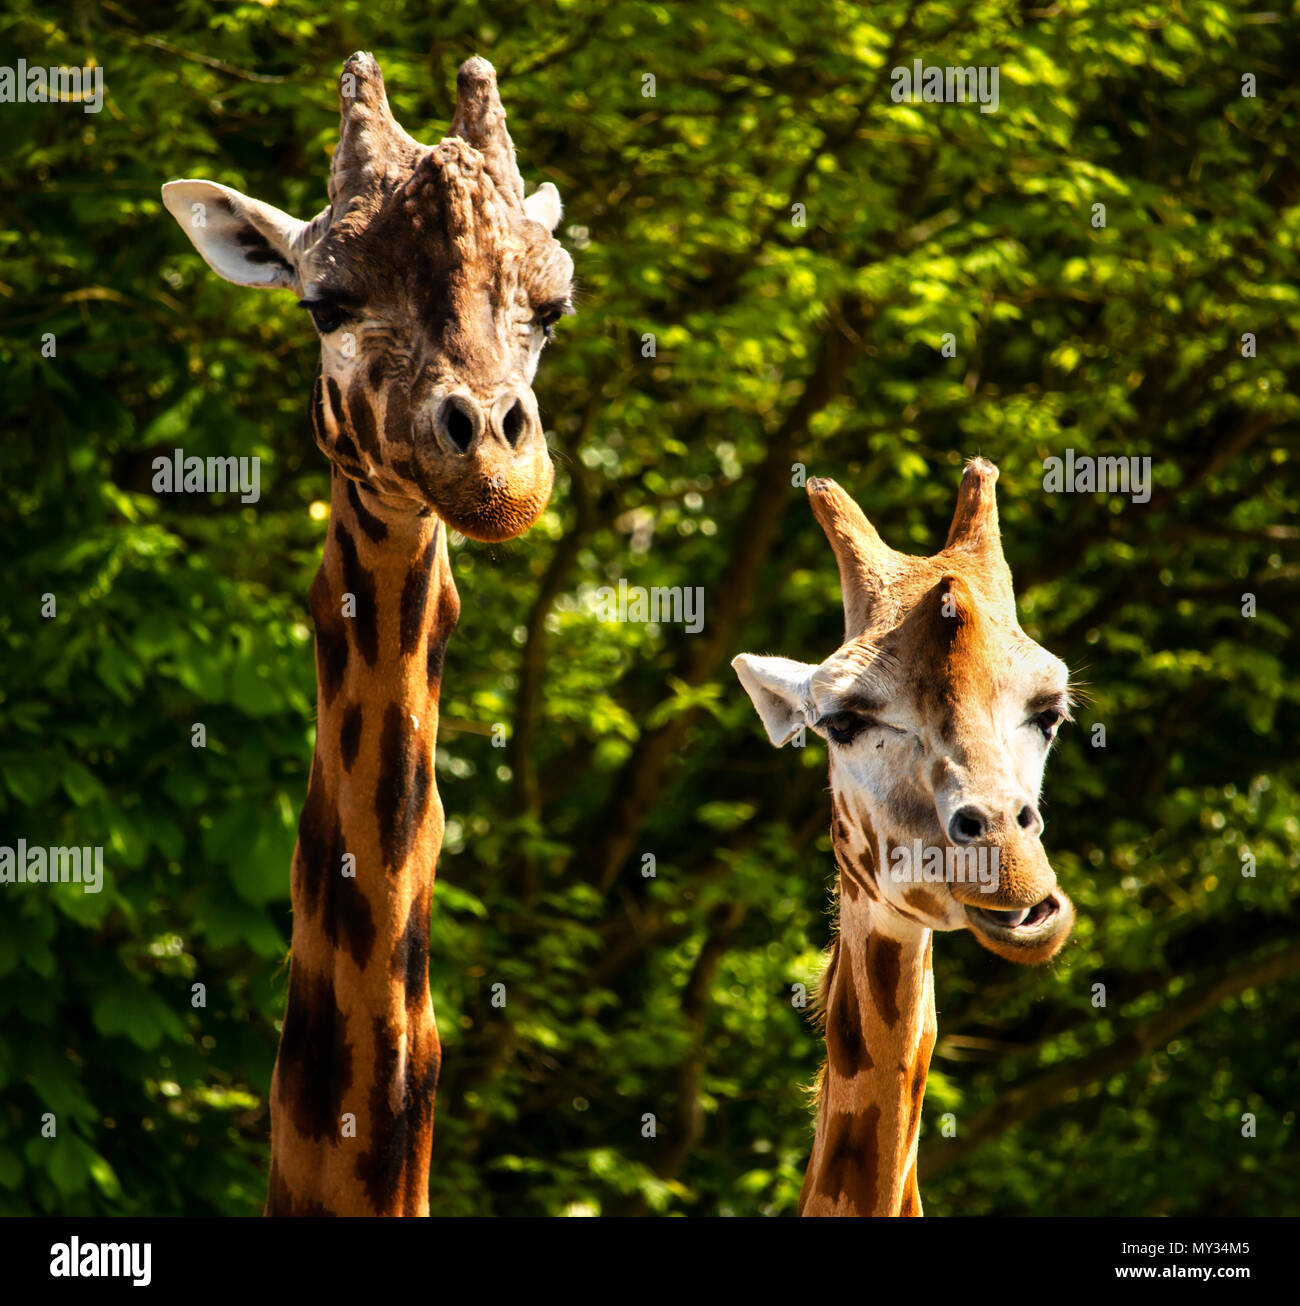 Image of two Giraffe's, Taken at Paignton Zoo 2018 - Stock Image